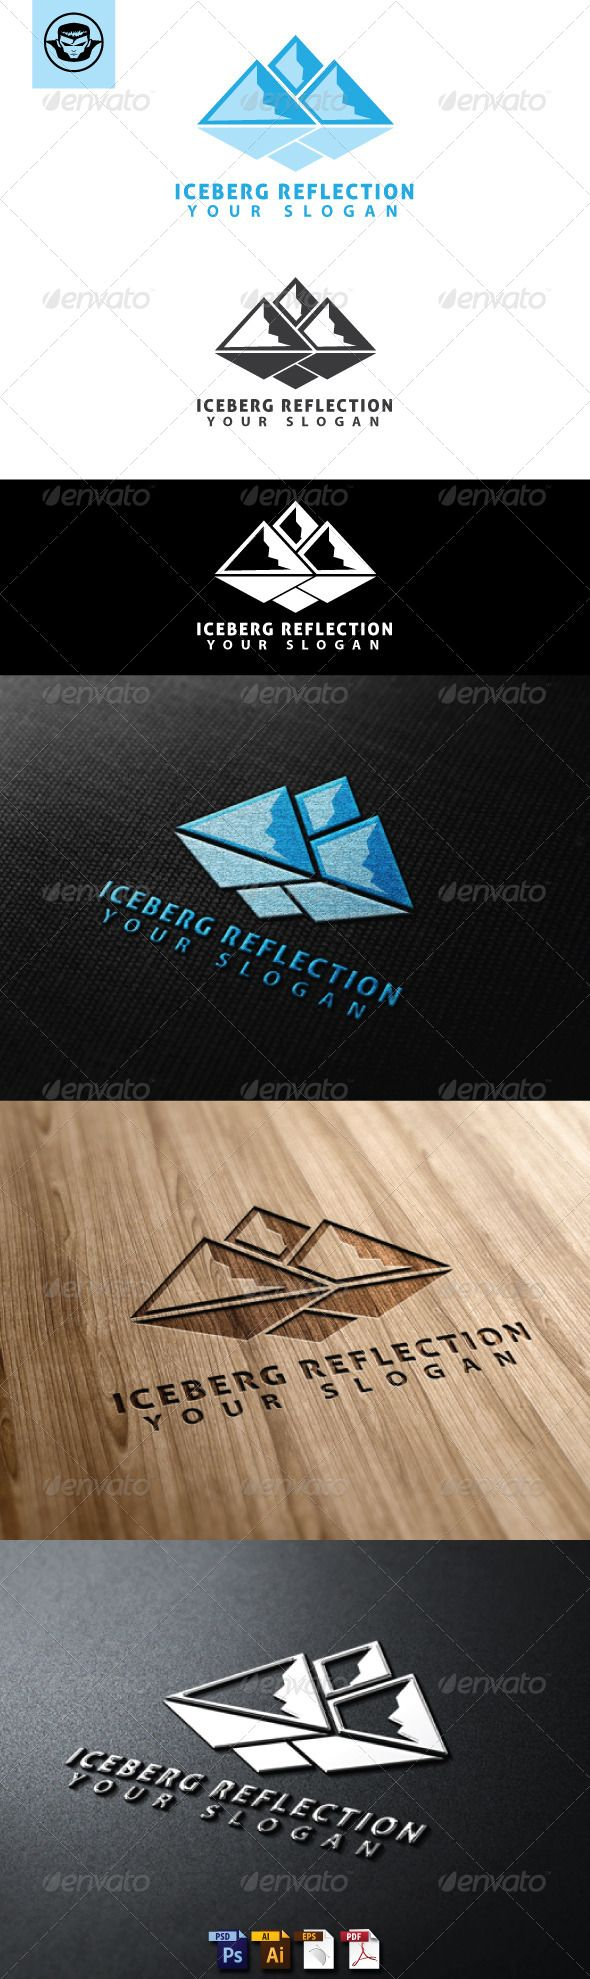 Iceberg Reflection Logo Template #GraphicRiver Iceberg Reflection Logo Template is An excellent logo template highly suitable for logo company, office, organization, studio, Production, Film, Movie These files consists of resizable vector format files like AI, EPS , and PDF . Also PSD format for raster version alternative. font used Aller Created: 22May13 GraphicsFilesIncluded: PhotoshopPSD #VectorEPS #AIIllustrator Layered: Yes MinimumAdobeCSVersion: CS Resolution: Resizable Tags: antarctica #b